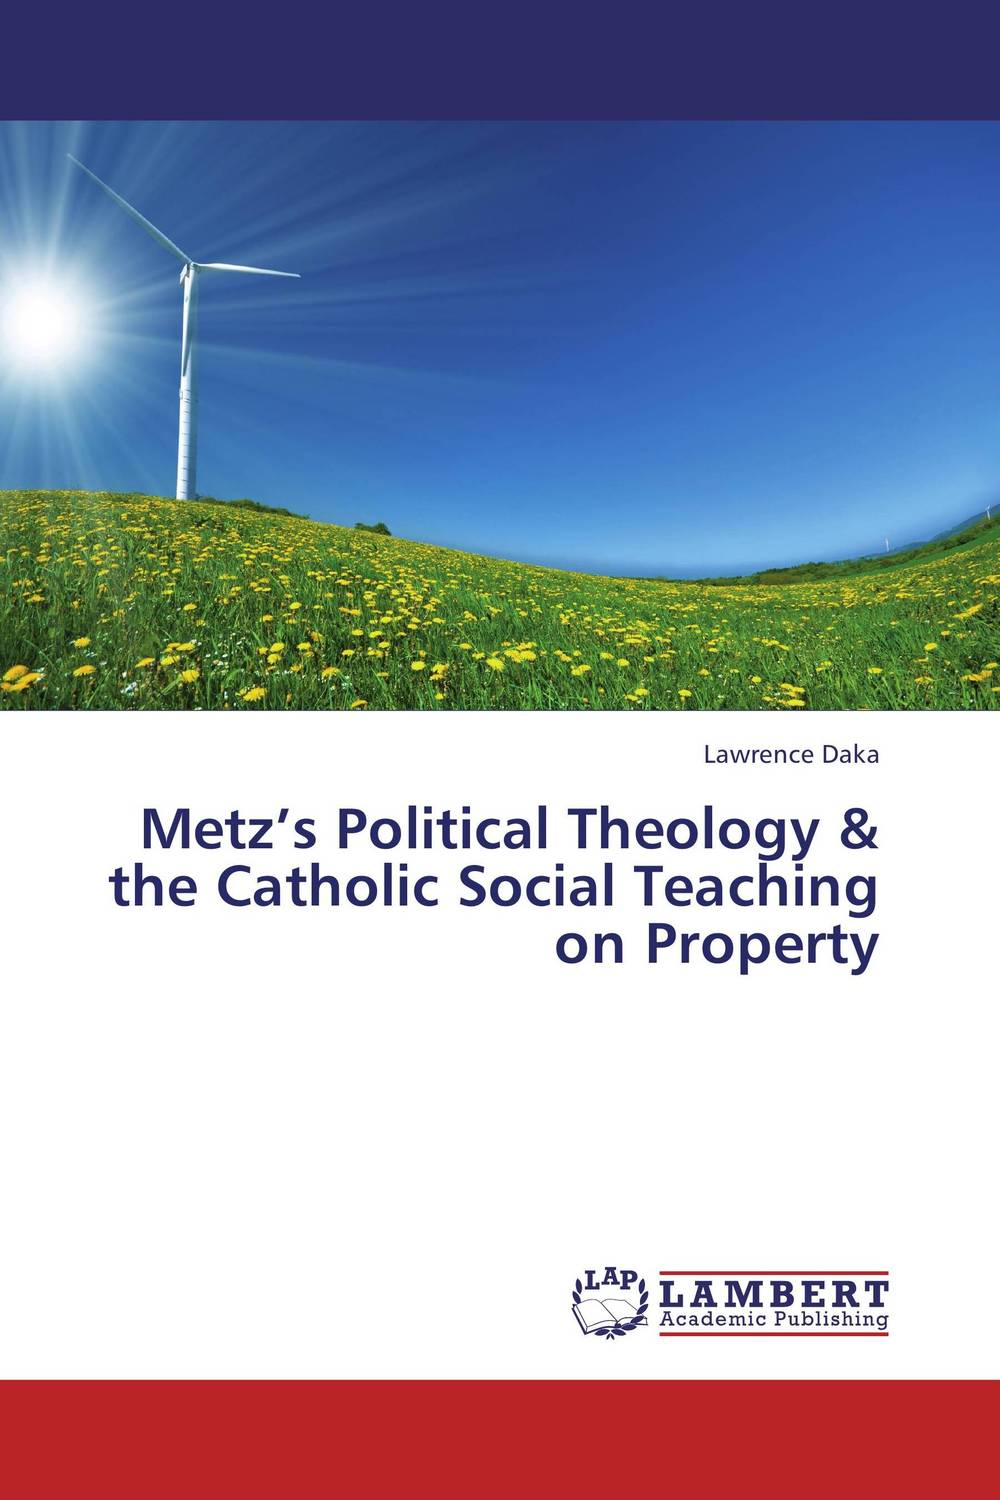 Metz's Political Theology & the Catholic Social Teaching on Property bort bsi 220s